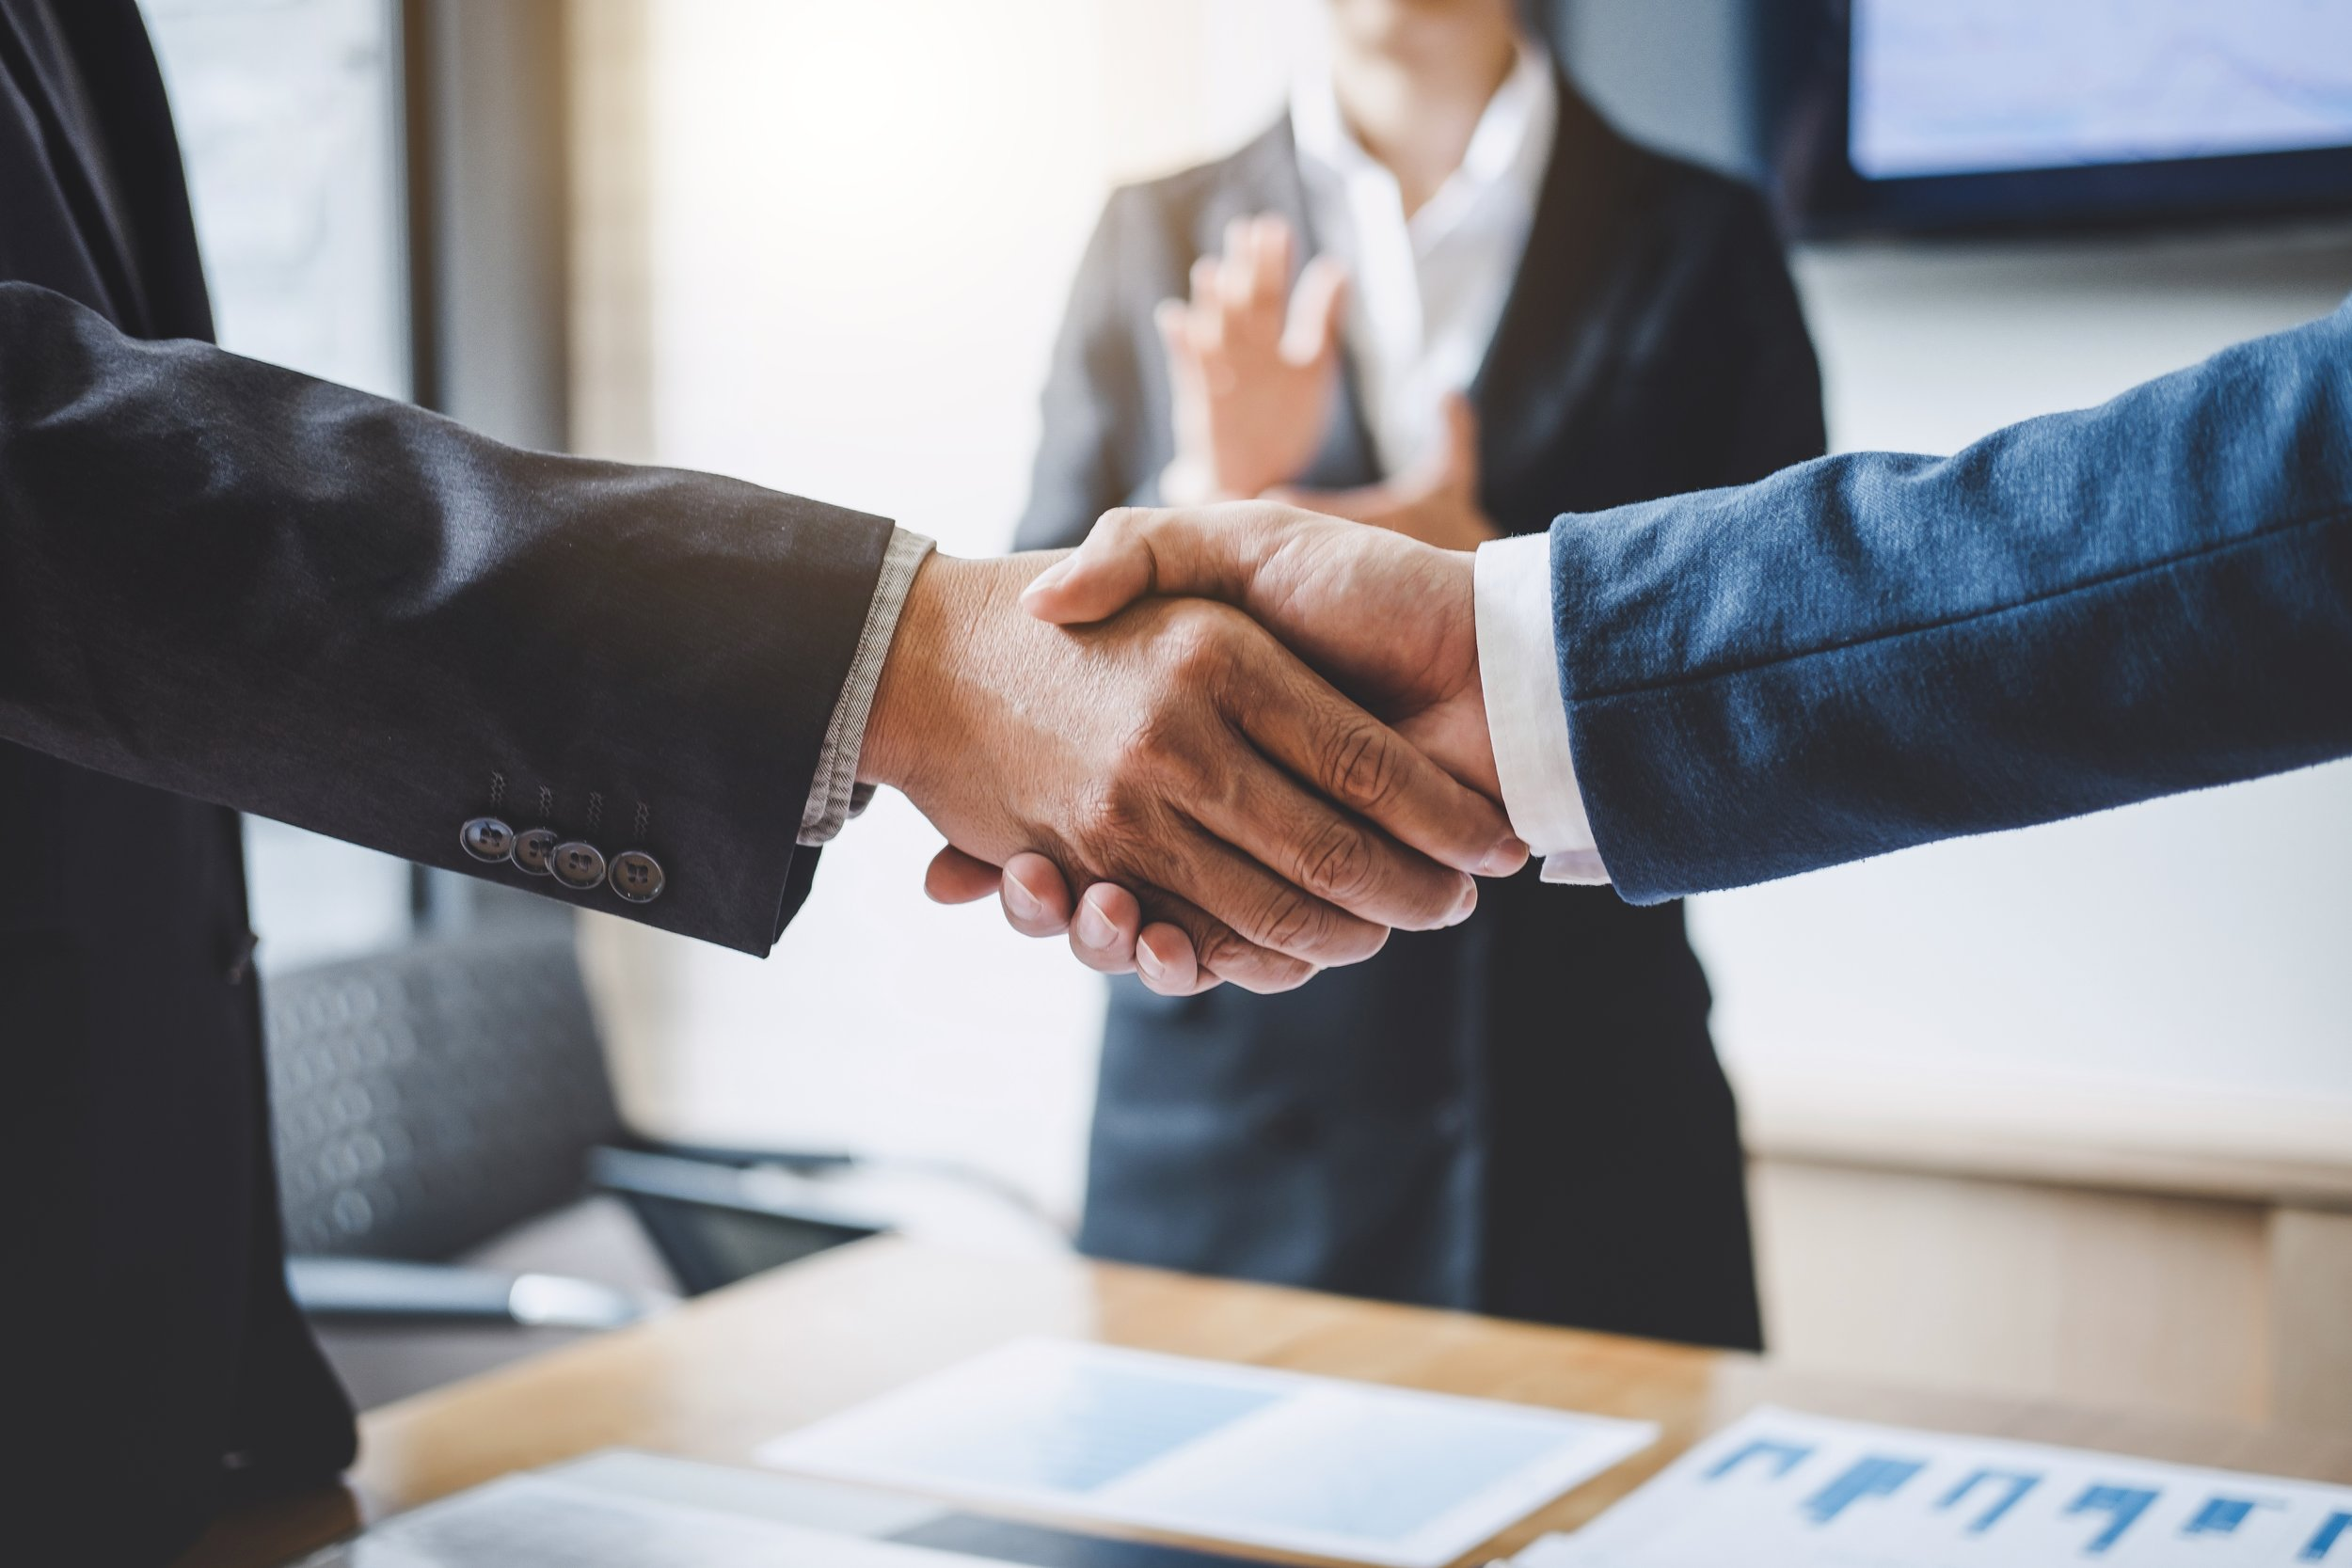 finishing-up-a-meeting-business-shaking-hands-after-discussing-good-deal-of-trading-to-sign-agreement.jpg